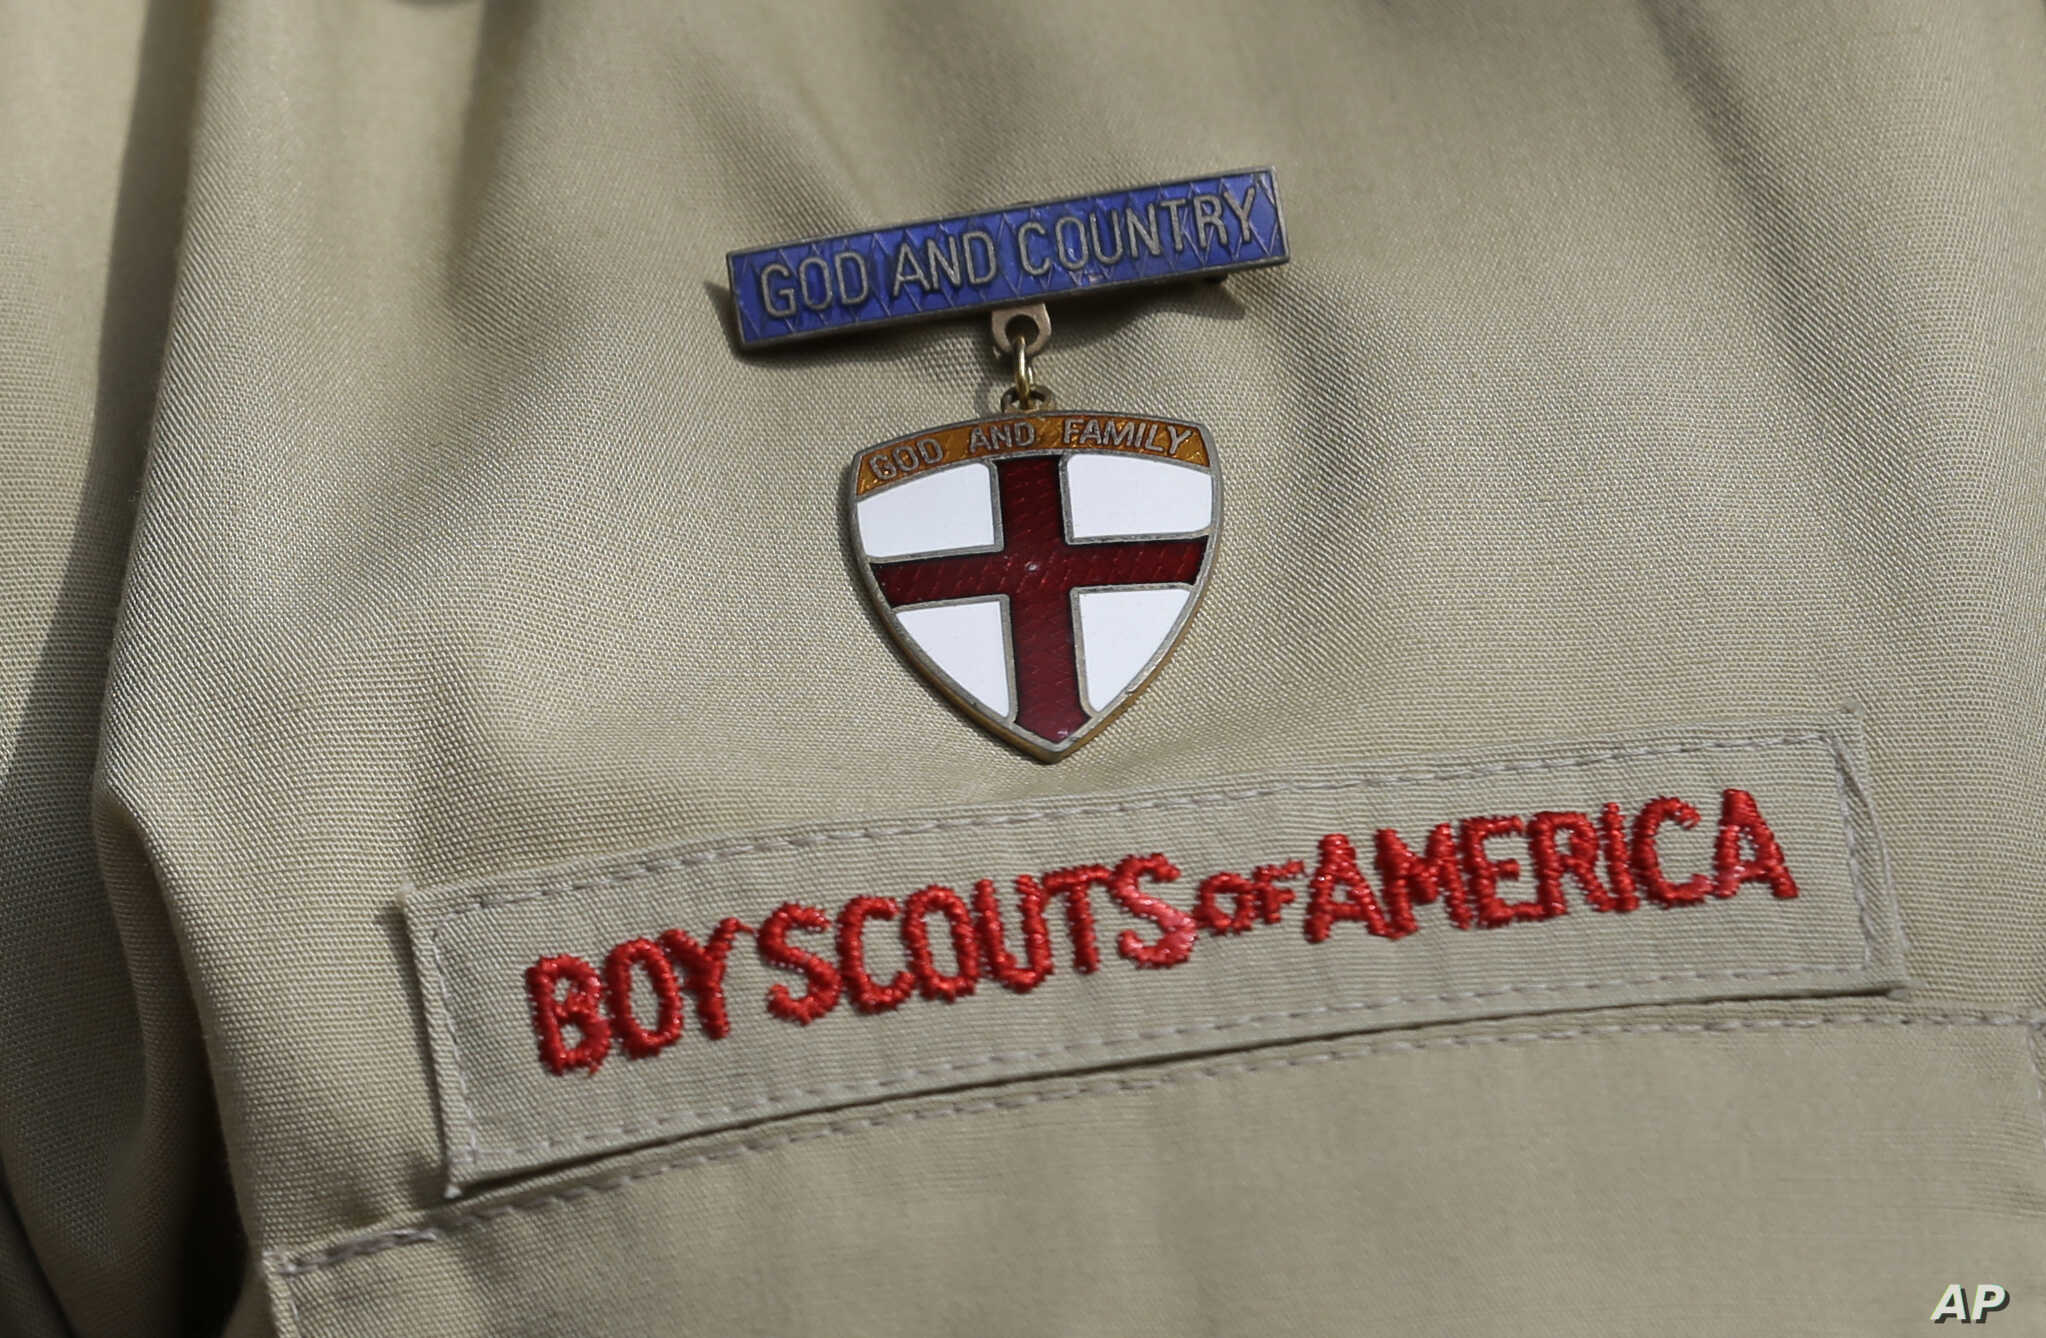 A photo shows a close-up detail of a Boy Scout uniform worn by a scout during a news conference at the Boy Scouts of America headquarters in Irving, Texas, Feb. 4, 2013.